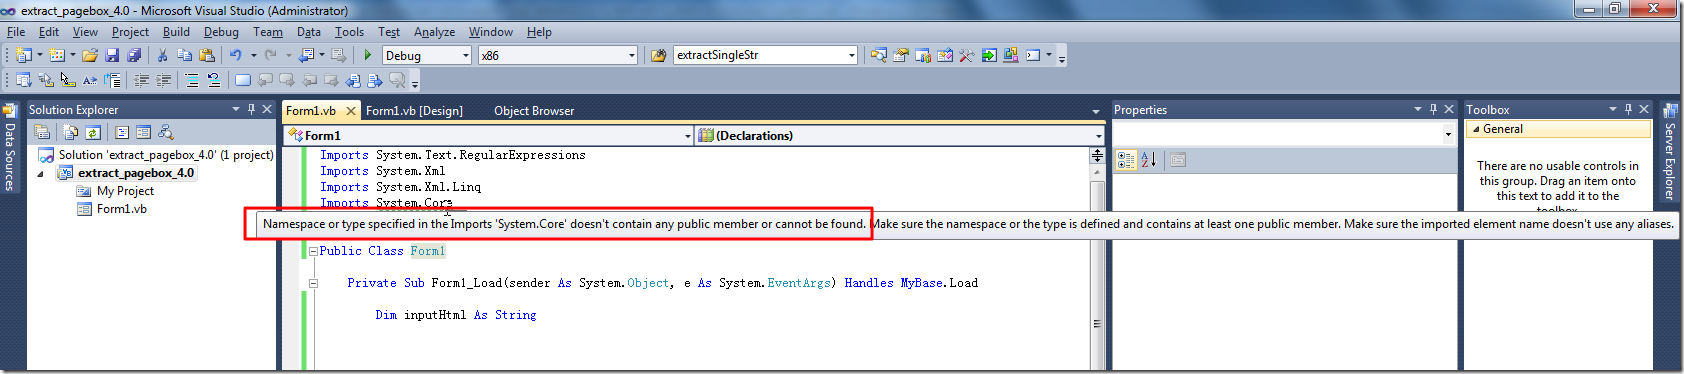 Namespace or type specified in the Imports System.Core doesnot contain any public member or cannot be found